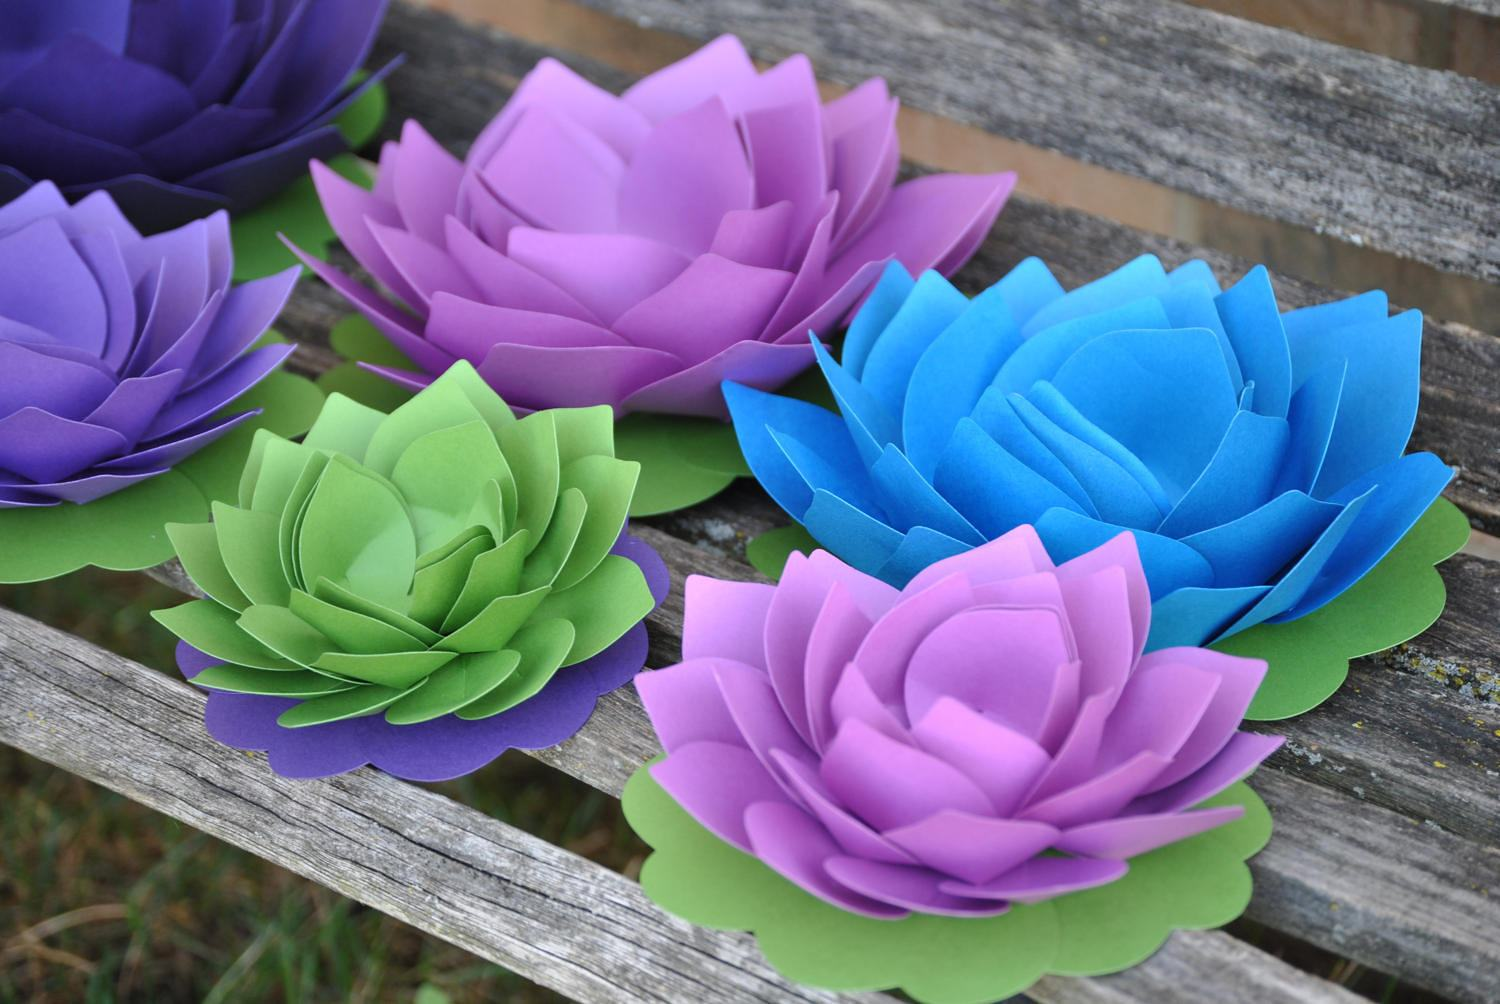 8 Lotus Flowers Choose Your Colors Wedding Decoration Display